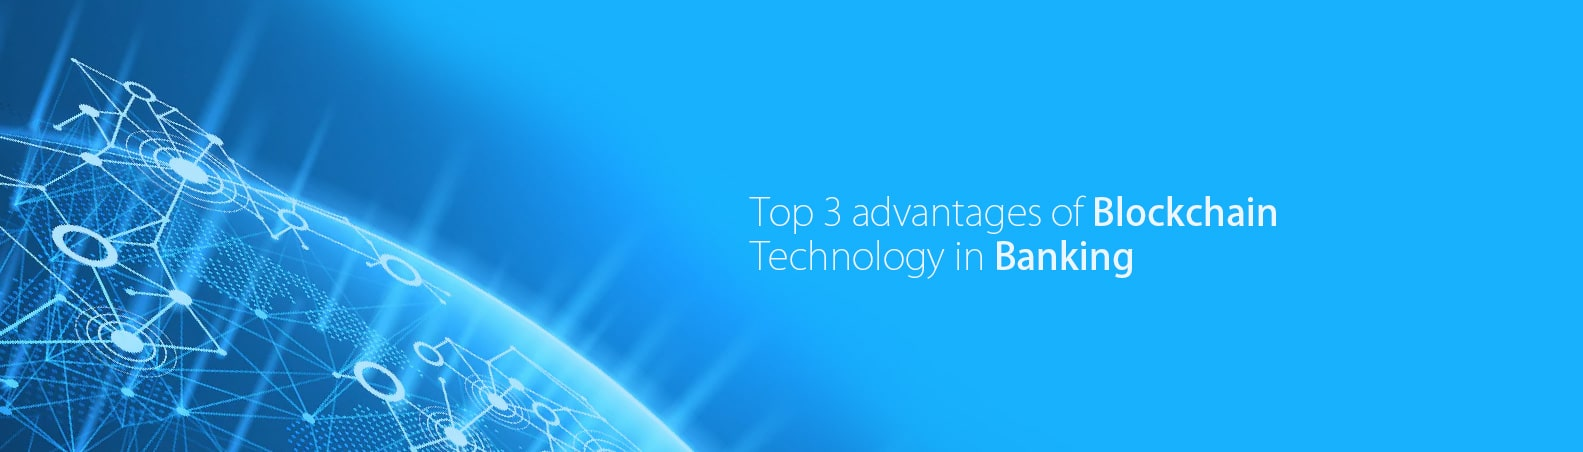 Top 3 advantages of blockchain technology in banking